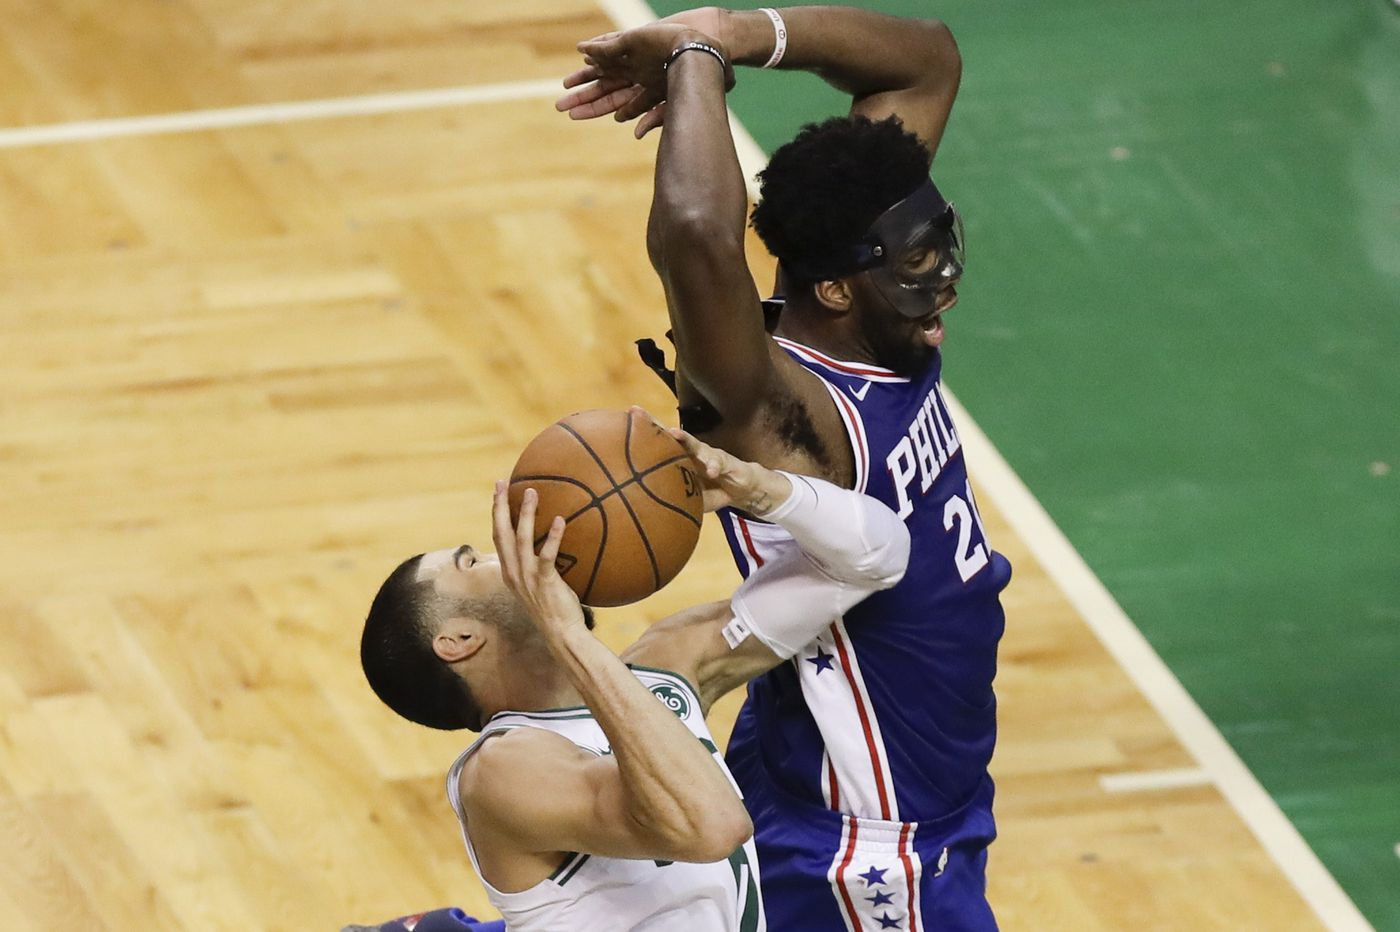 Video: Joel Embiid takes on Jayson Tatum and Mo Bamba, Markelle Fultz practices with Drew Hanlen